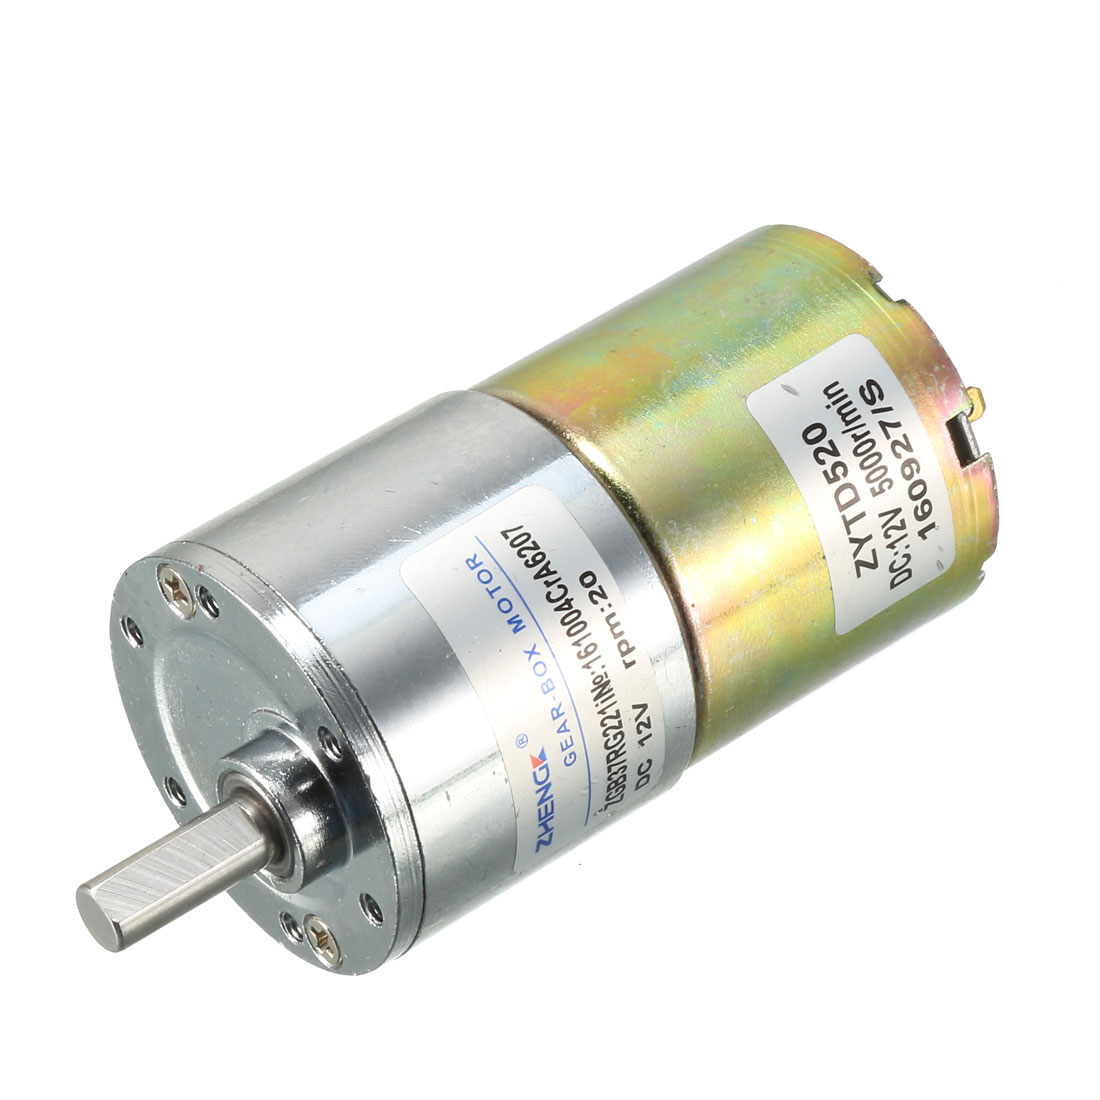 DFGB37RG-224i Cylinder Shape DC 12V Speed 20 RPM Geared Motor